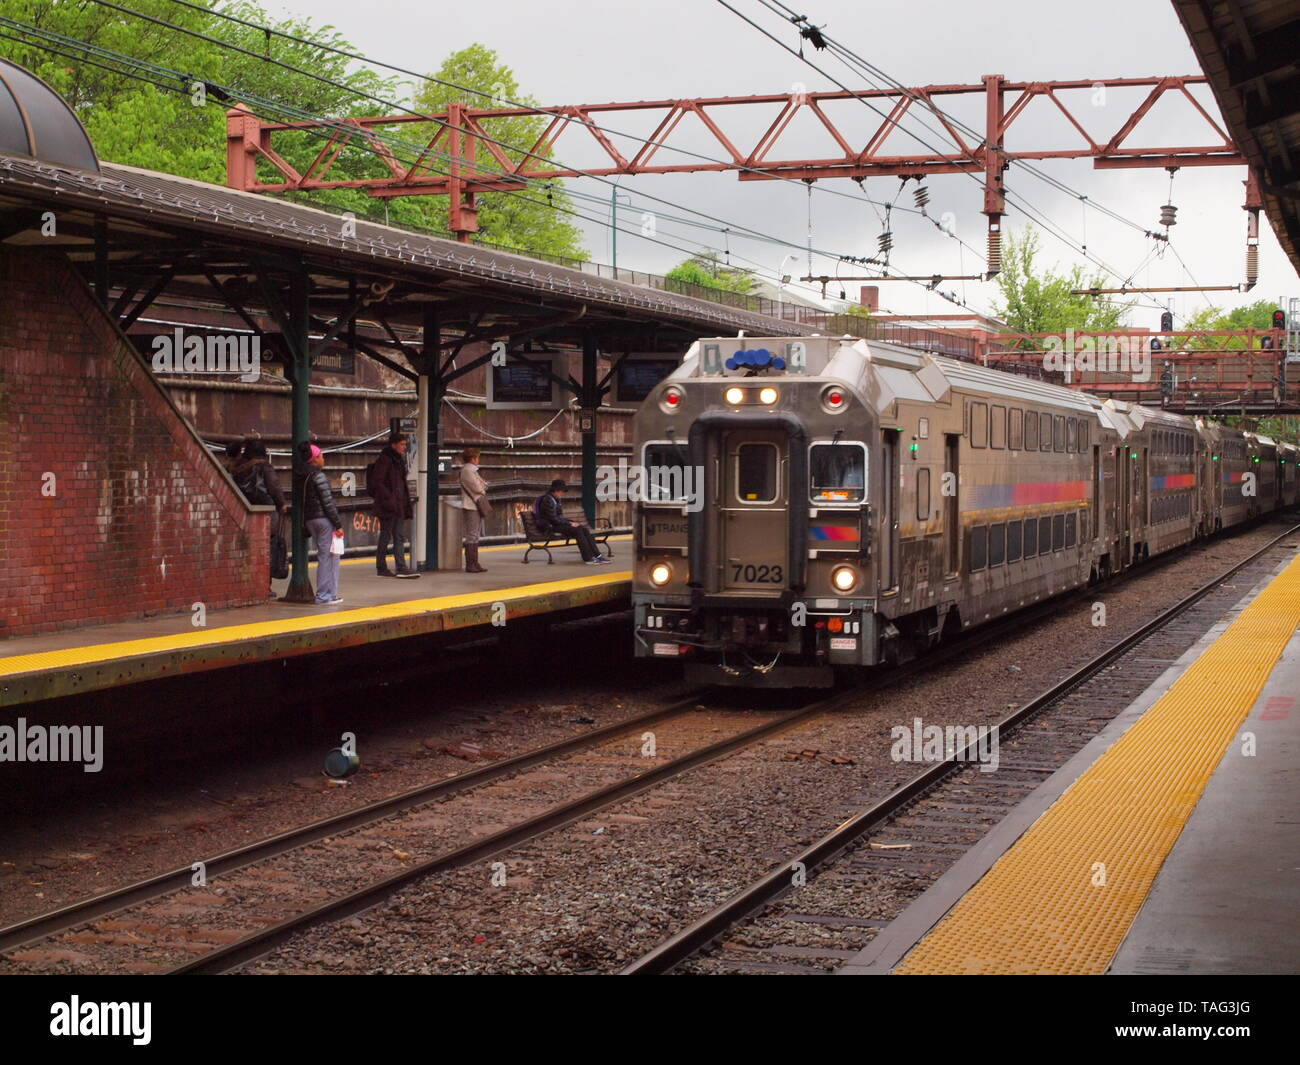 New Jersey Transit eastbound train at the Summit NJ station. Modern double decker passenger cars. - Stock Image